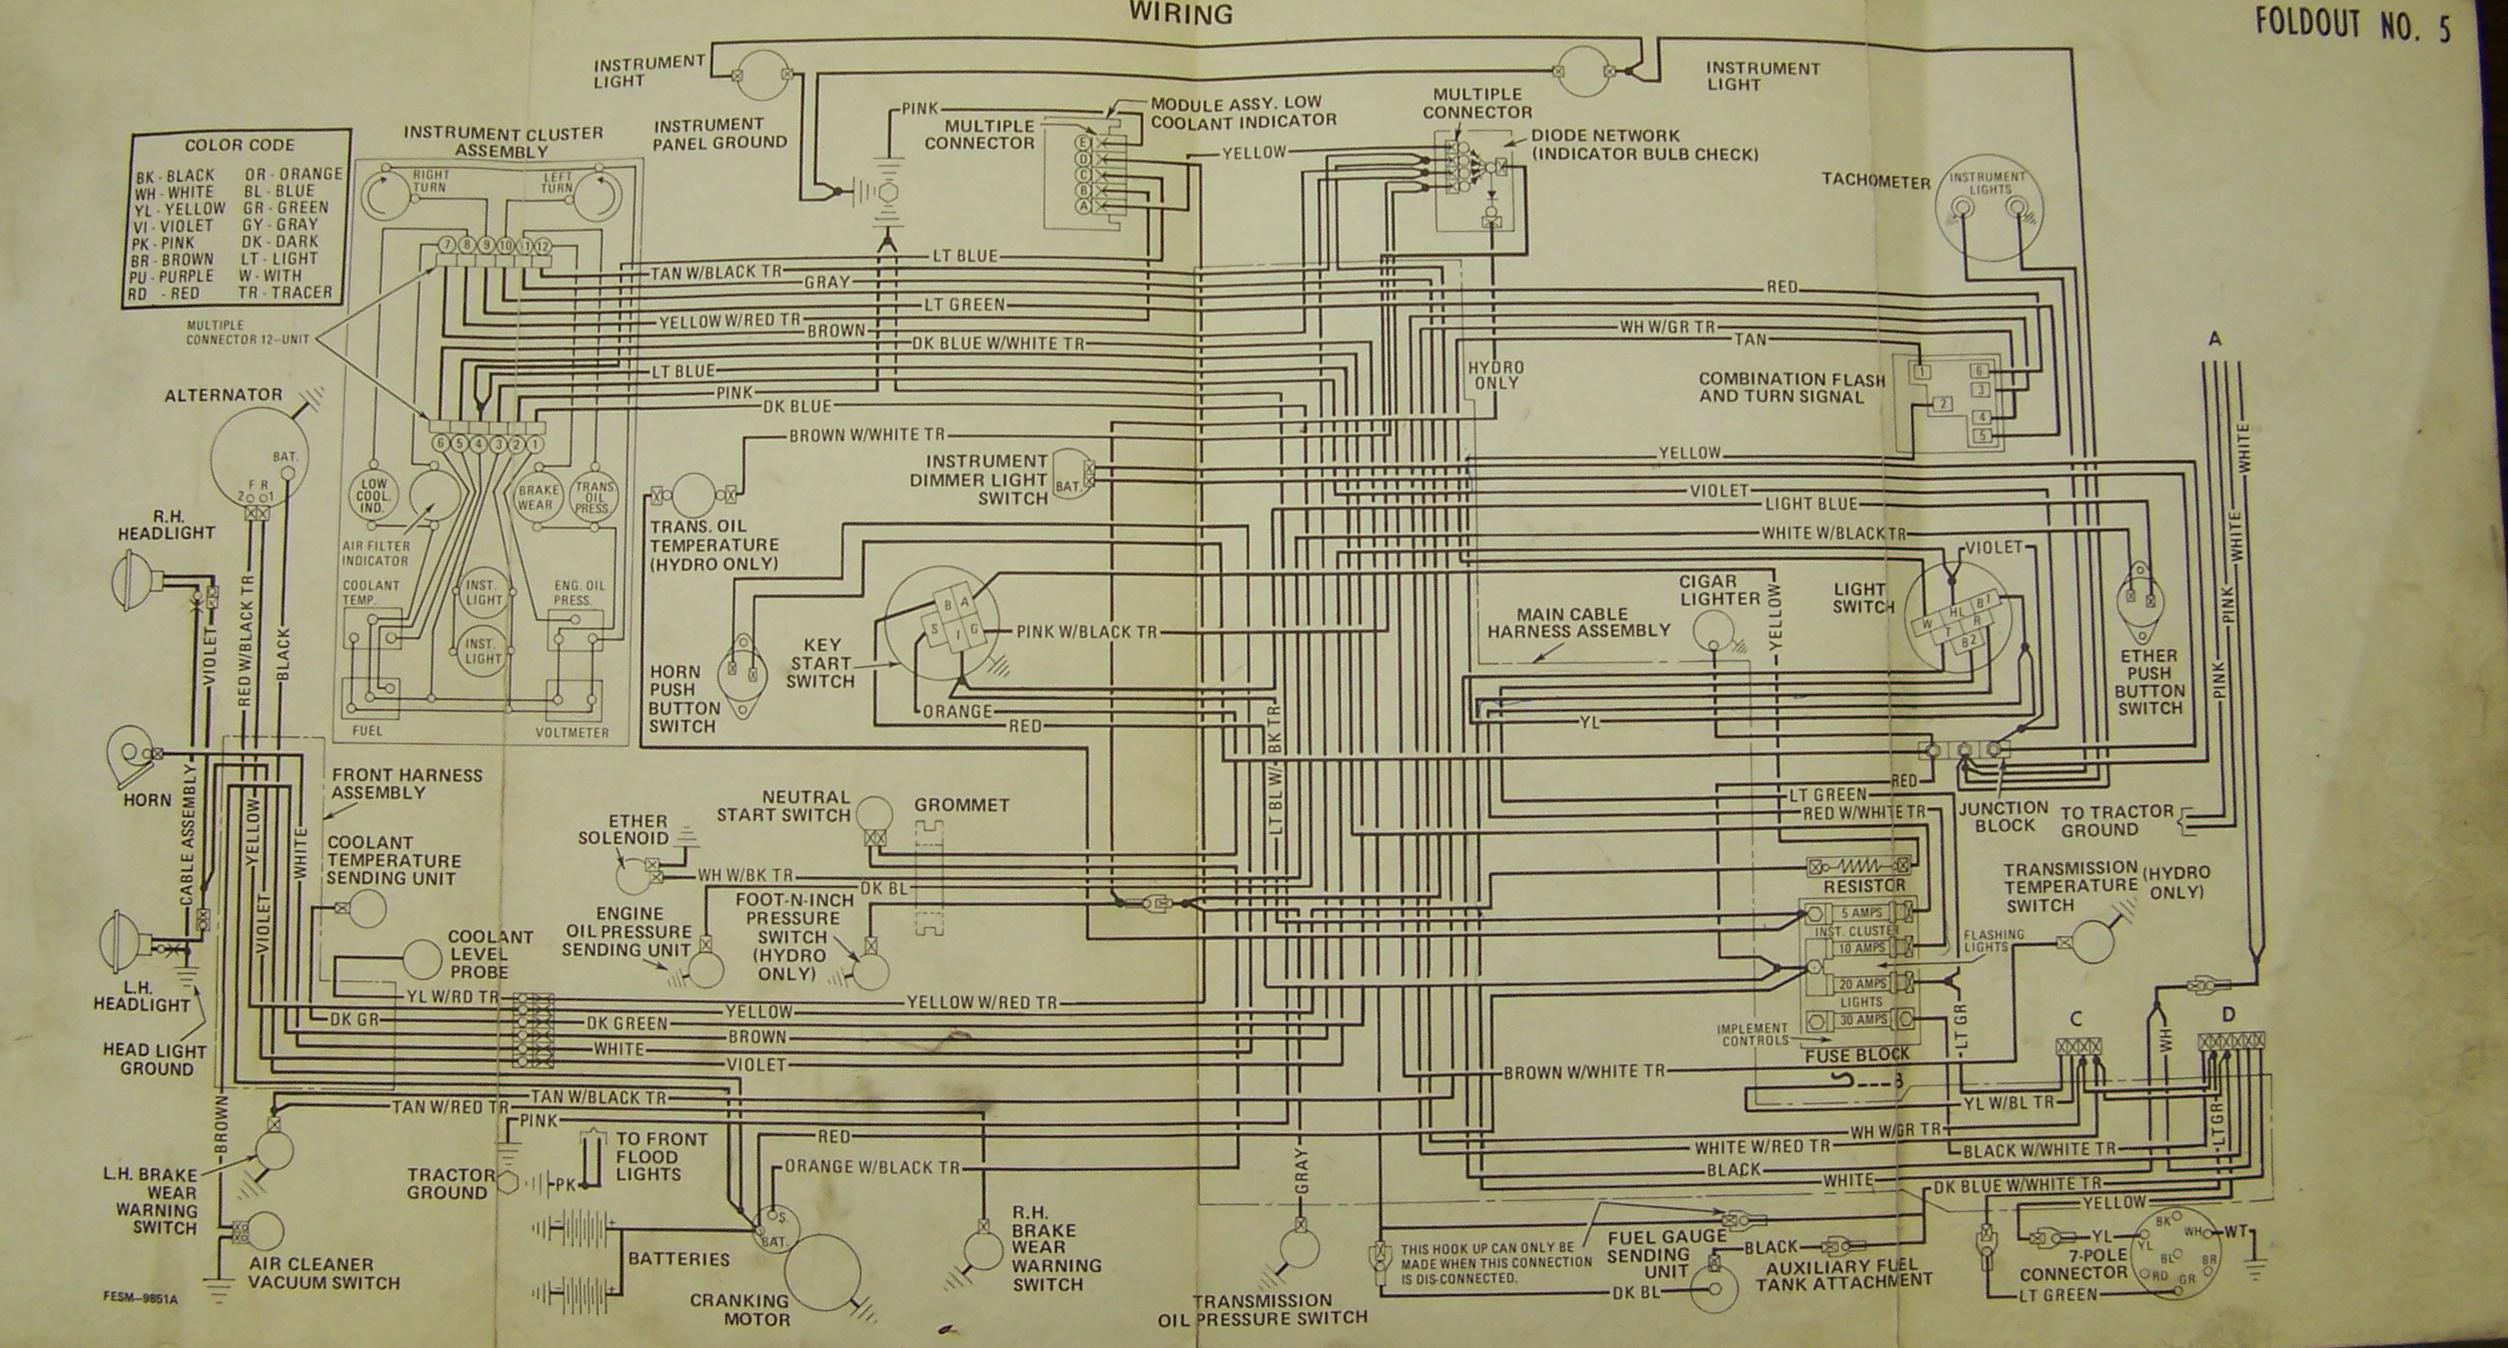 86series5 case ih 5240 wiring diagram wiring diagram and schematic design case 5130 wiring diagram at reclaimingppi.co